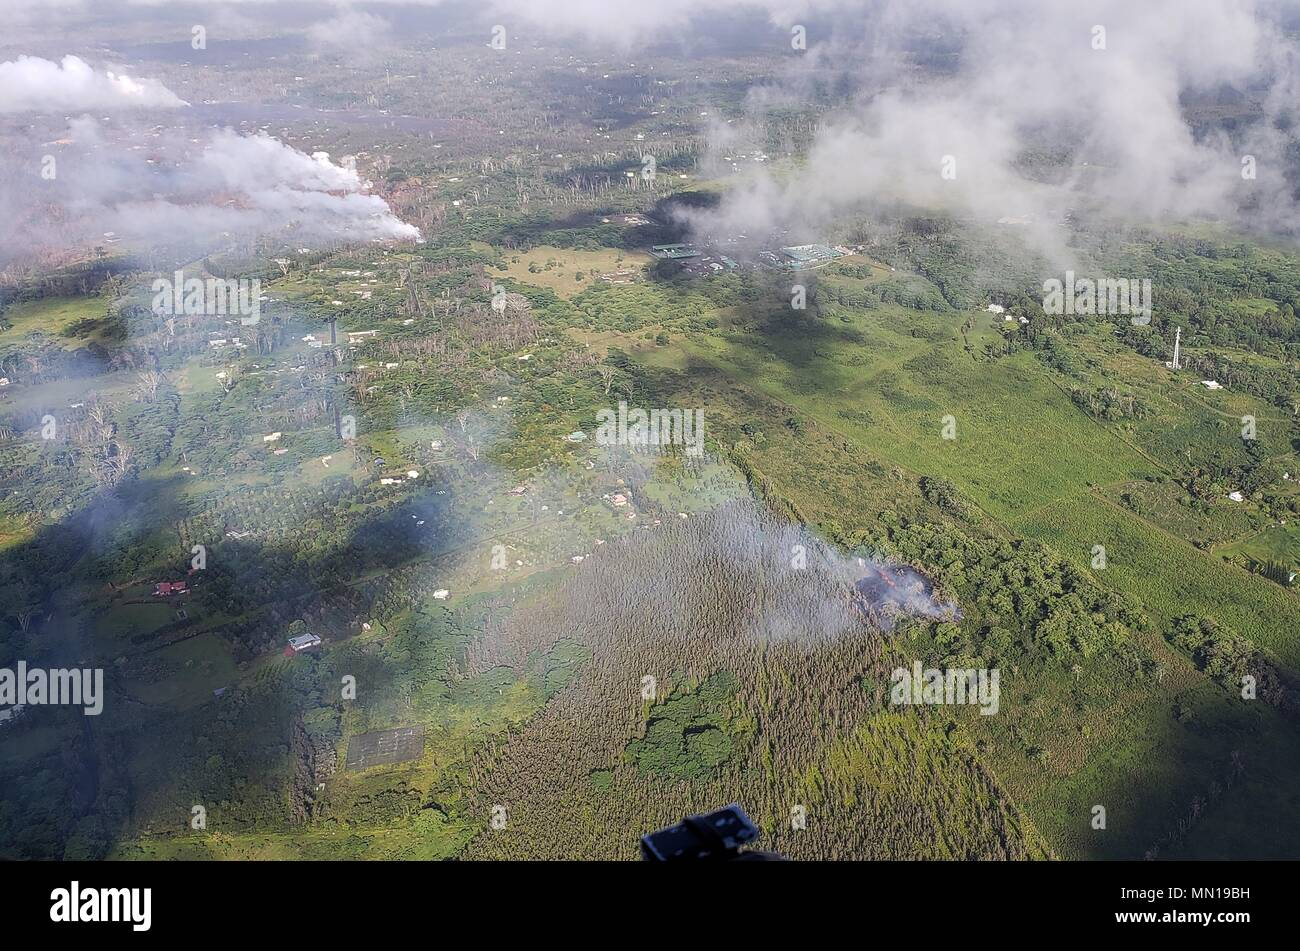 Hawaii, USA 12th May 2018. An aerial view of steam and lava escaping from newly formed fissure 16 from the Kilauea volcano May 12, 2018 in Leilani Estates, Hawaii. The fissure is located 500 meters northeast of the Puna Geothermal Venture site (top right). Credit: Planetpix/Alamy Live News - Stock Image